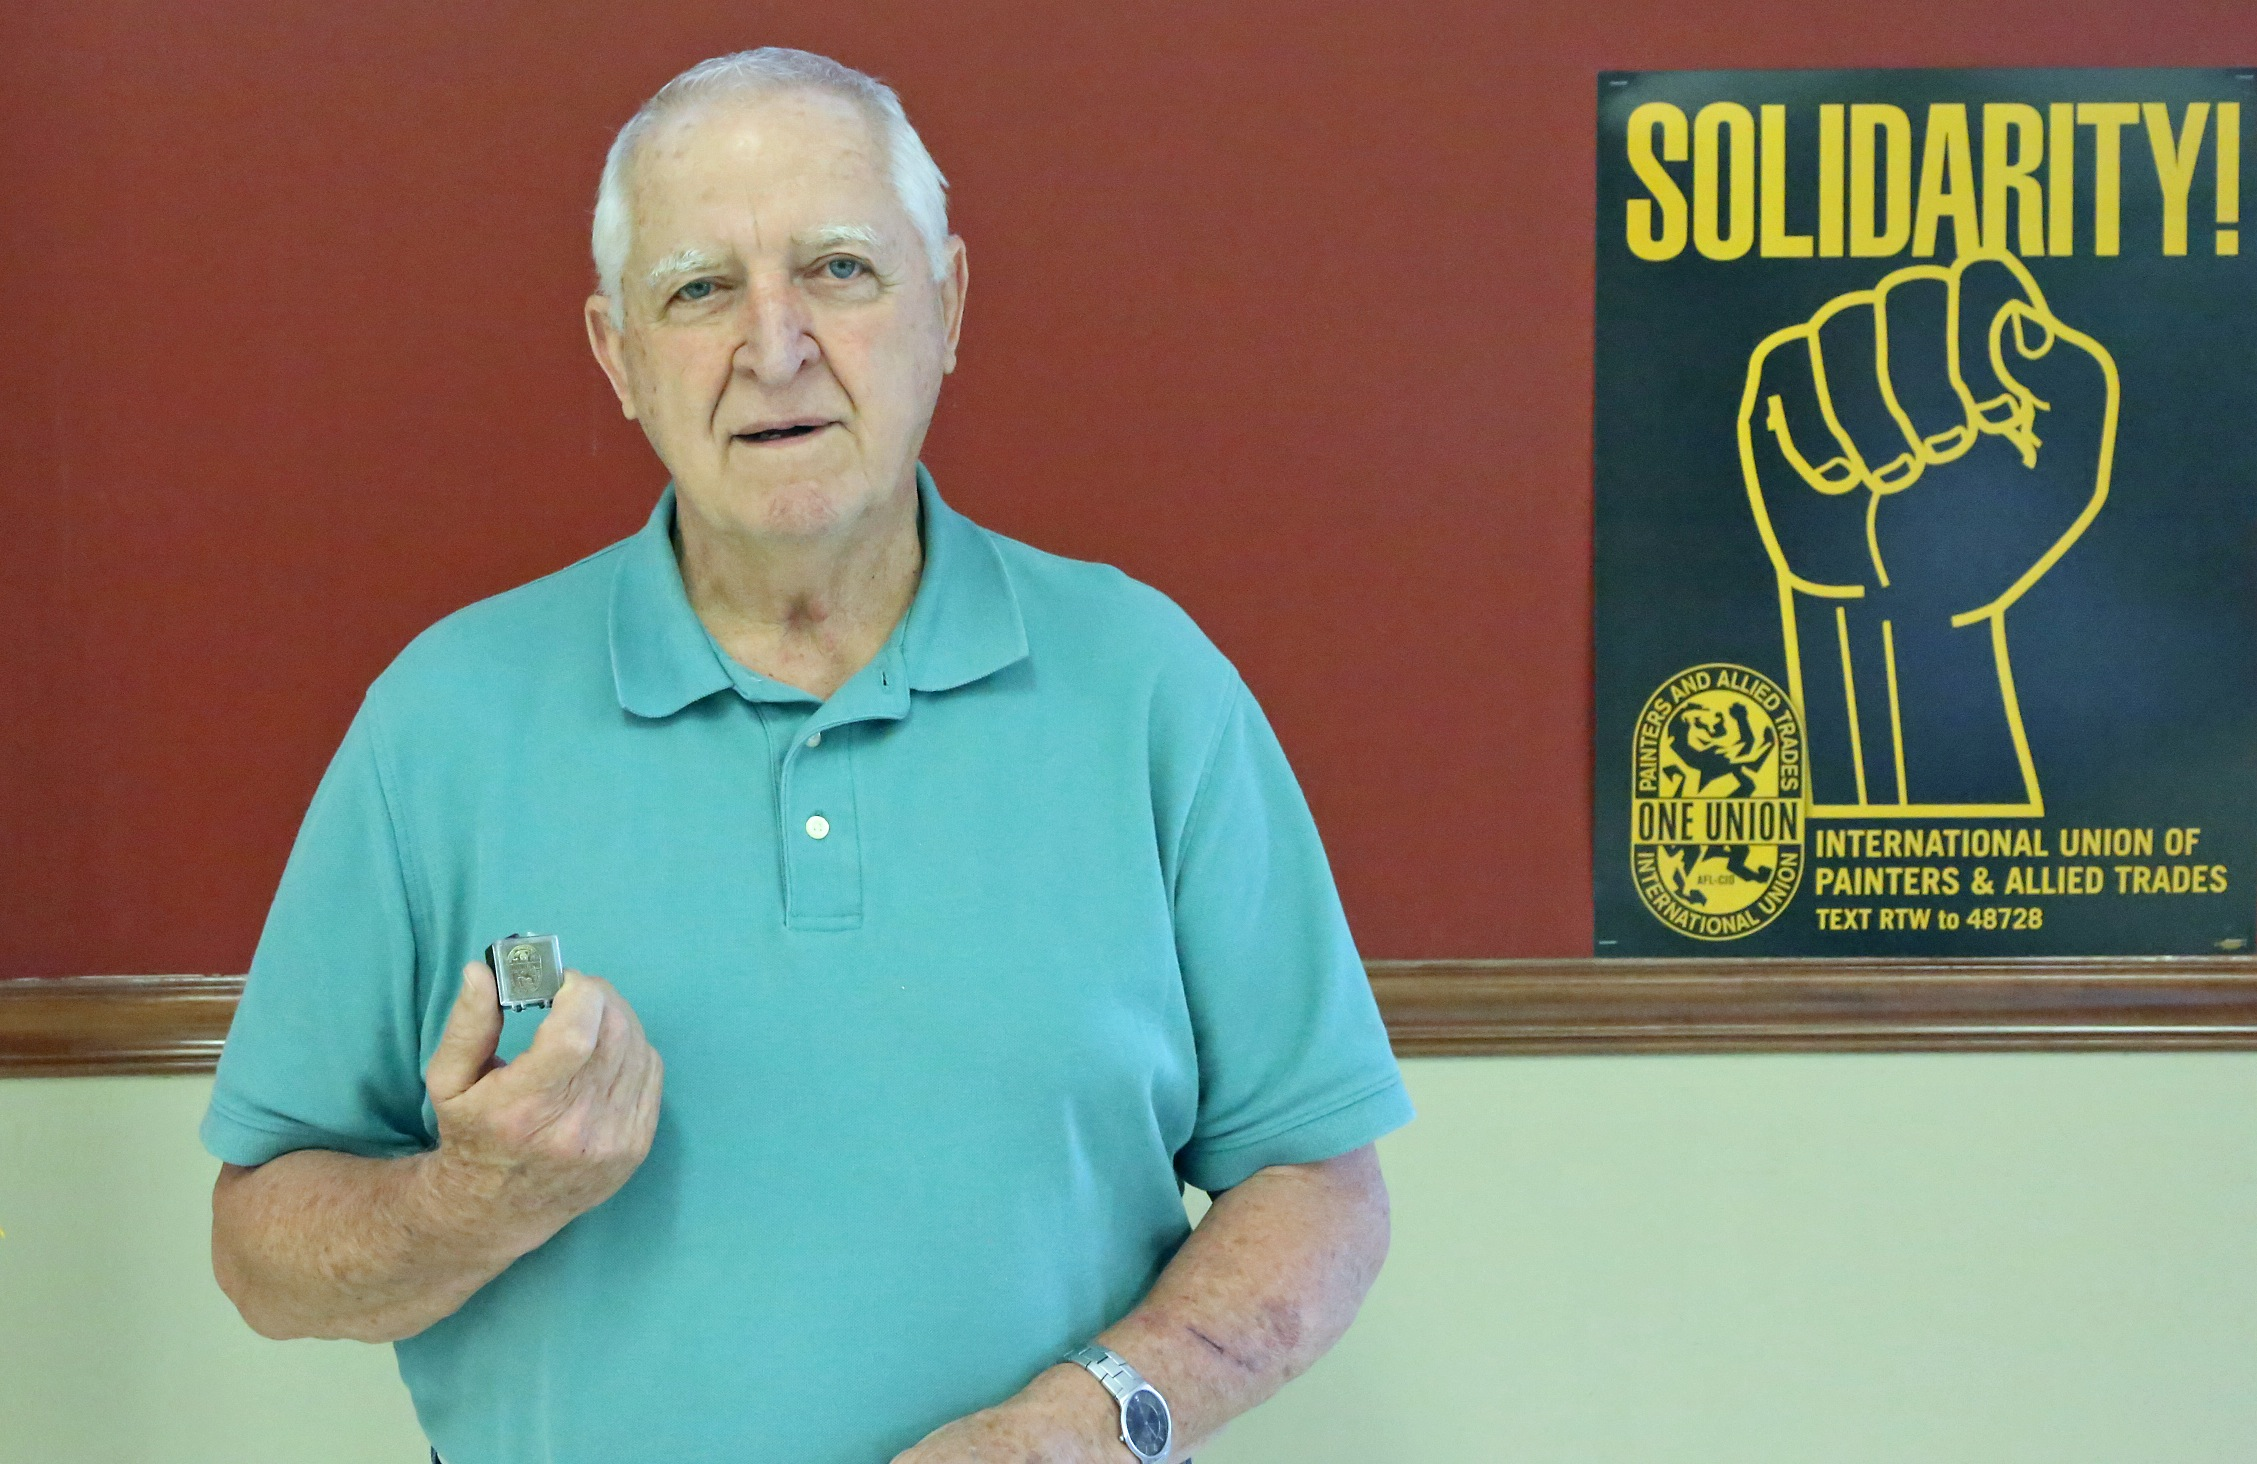 Dan Valleroy received his 55-Year pin.